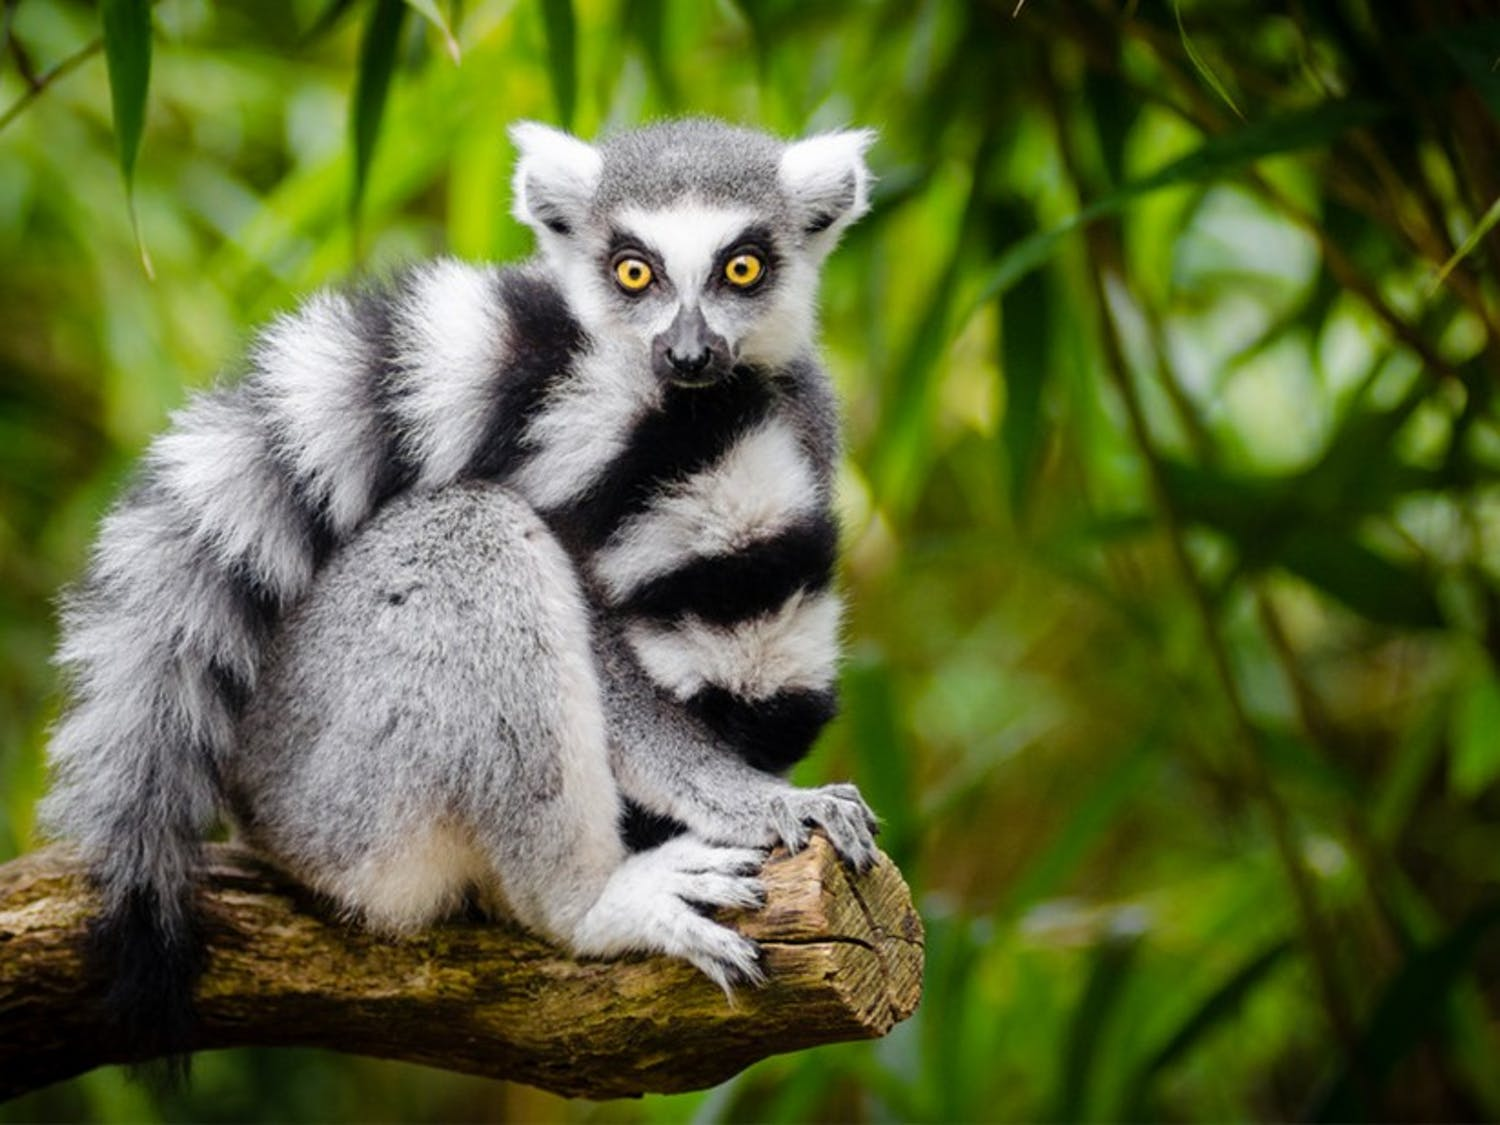 Habitat loss and hunting have caused the ring-tailed lemur population to decline.